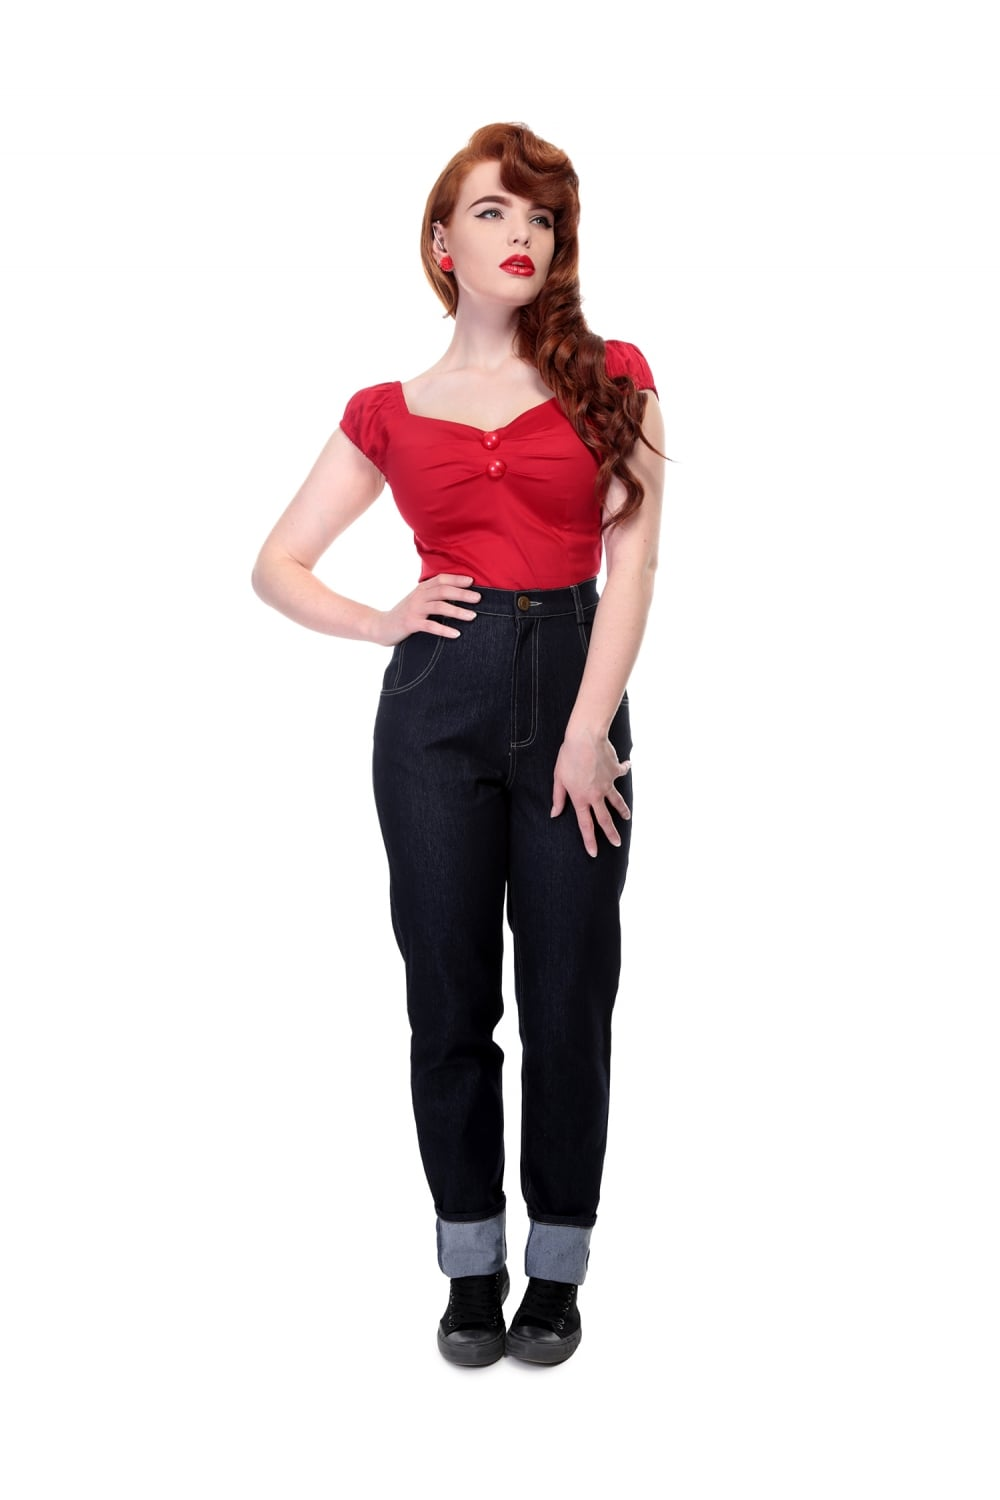 Collectif Monroe Plain Jeans stl M, L, 2XL,